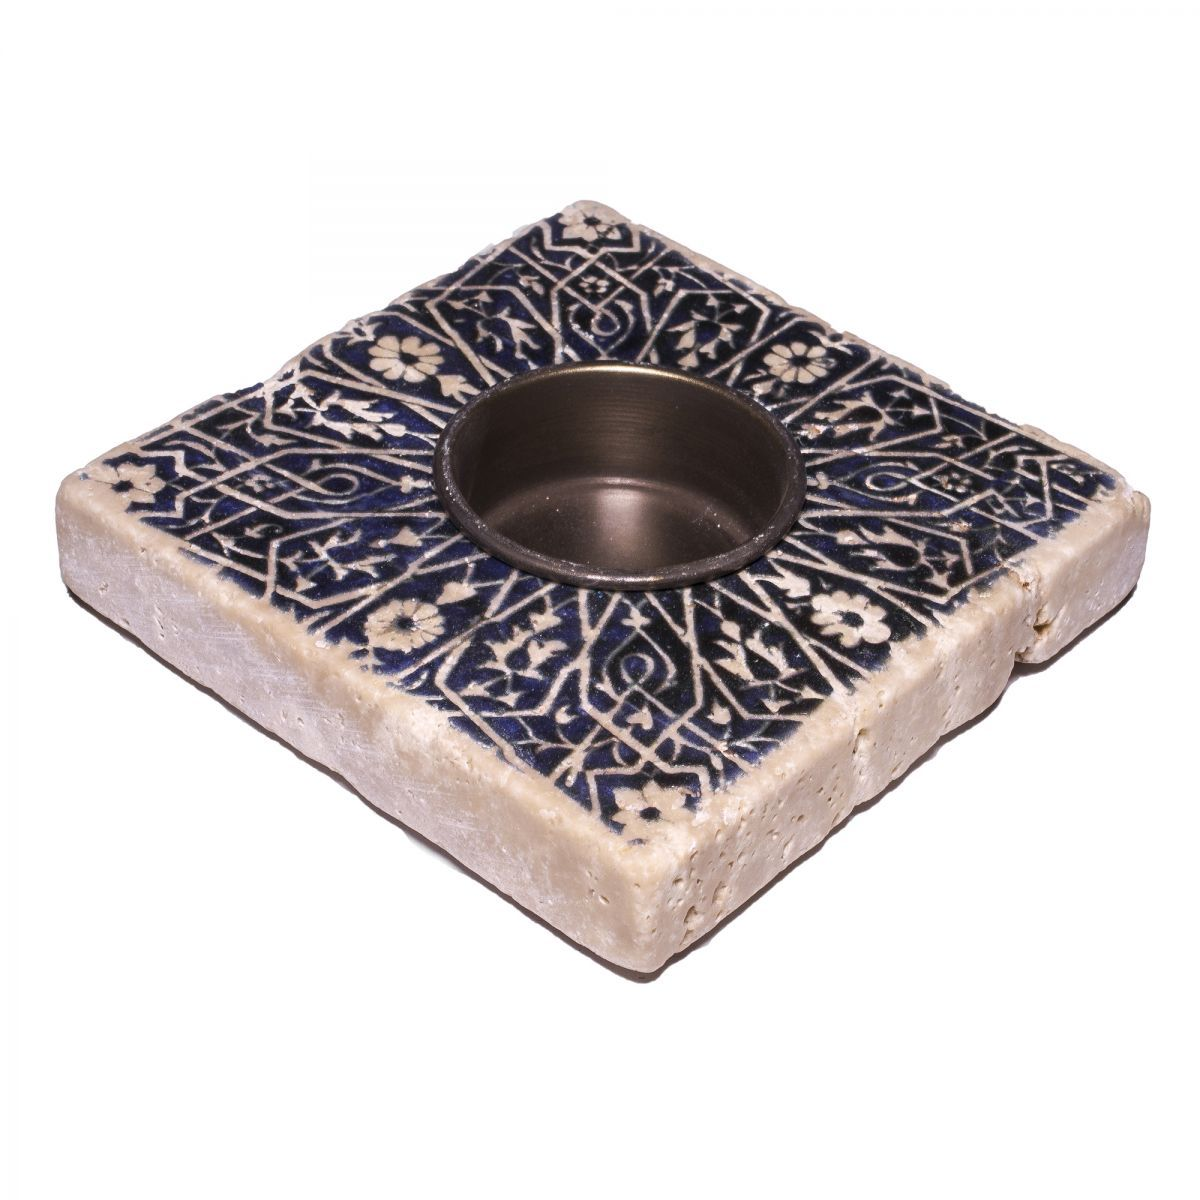 Candle Holder Lodge - Travertine 52A